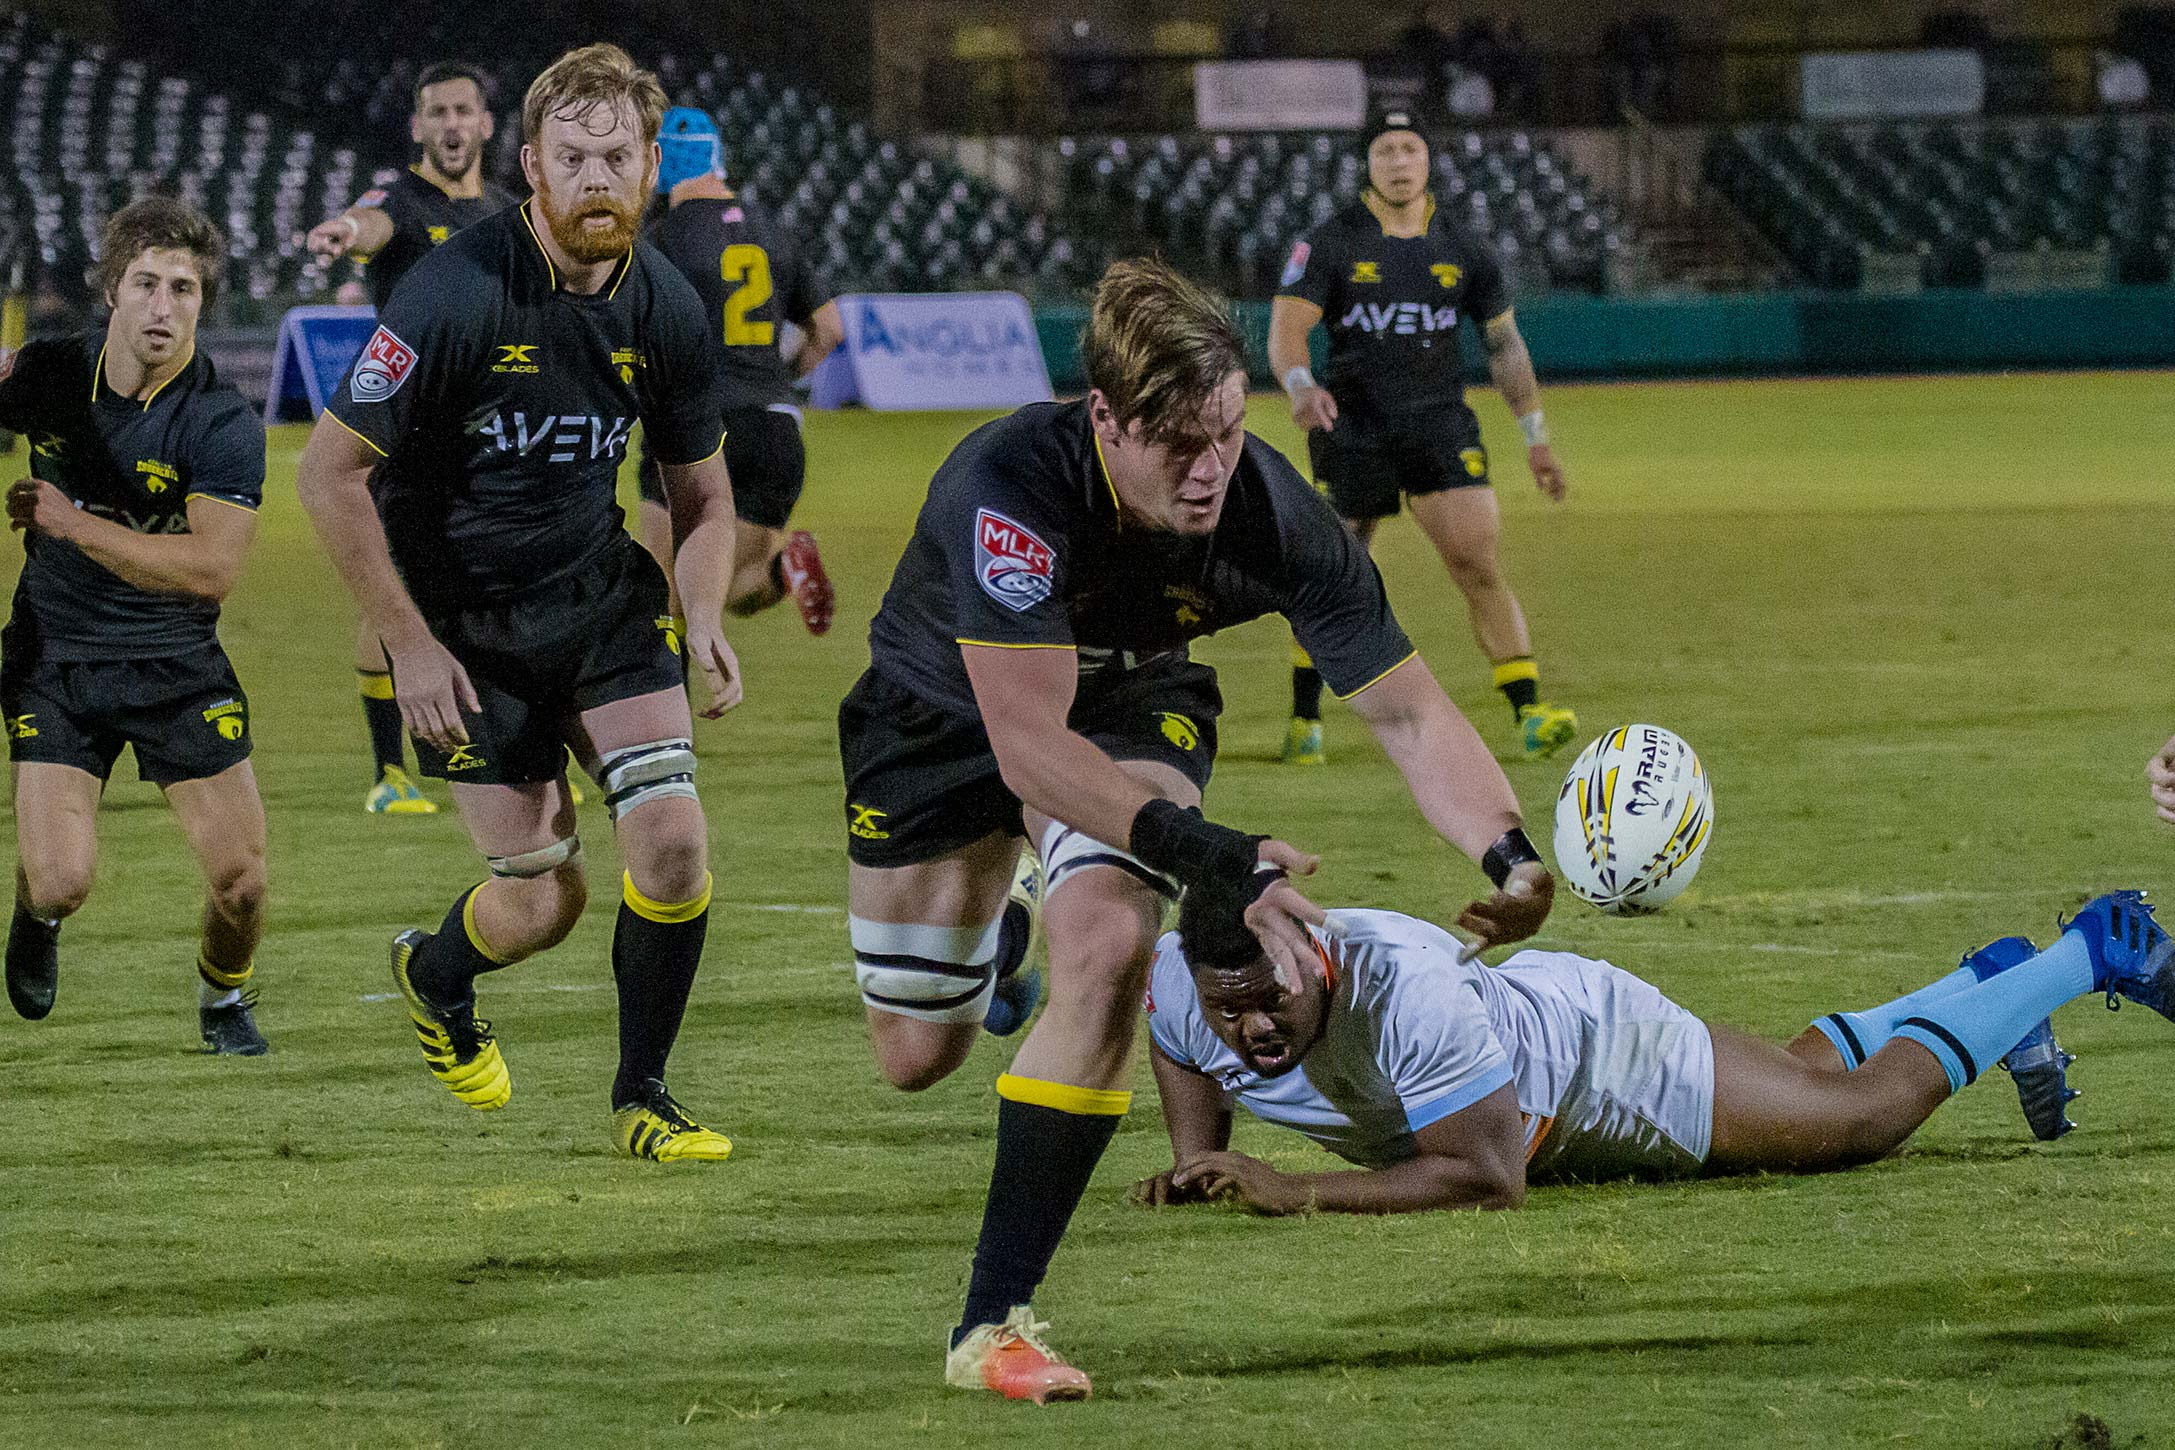 Ayron Schramm: Sabercat Stud and World Cup Hopeful